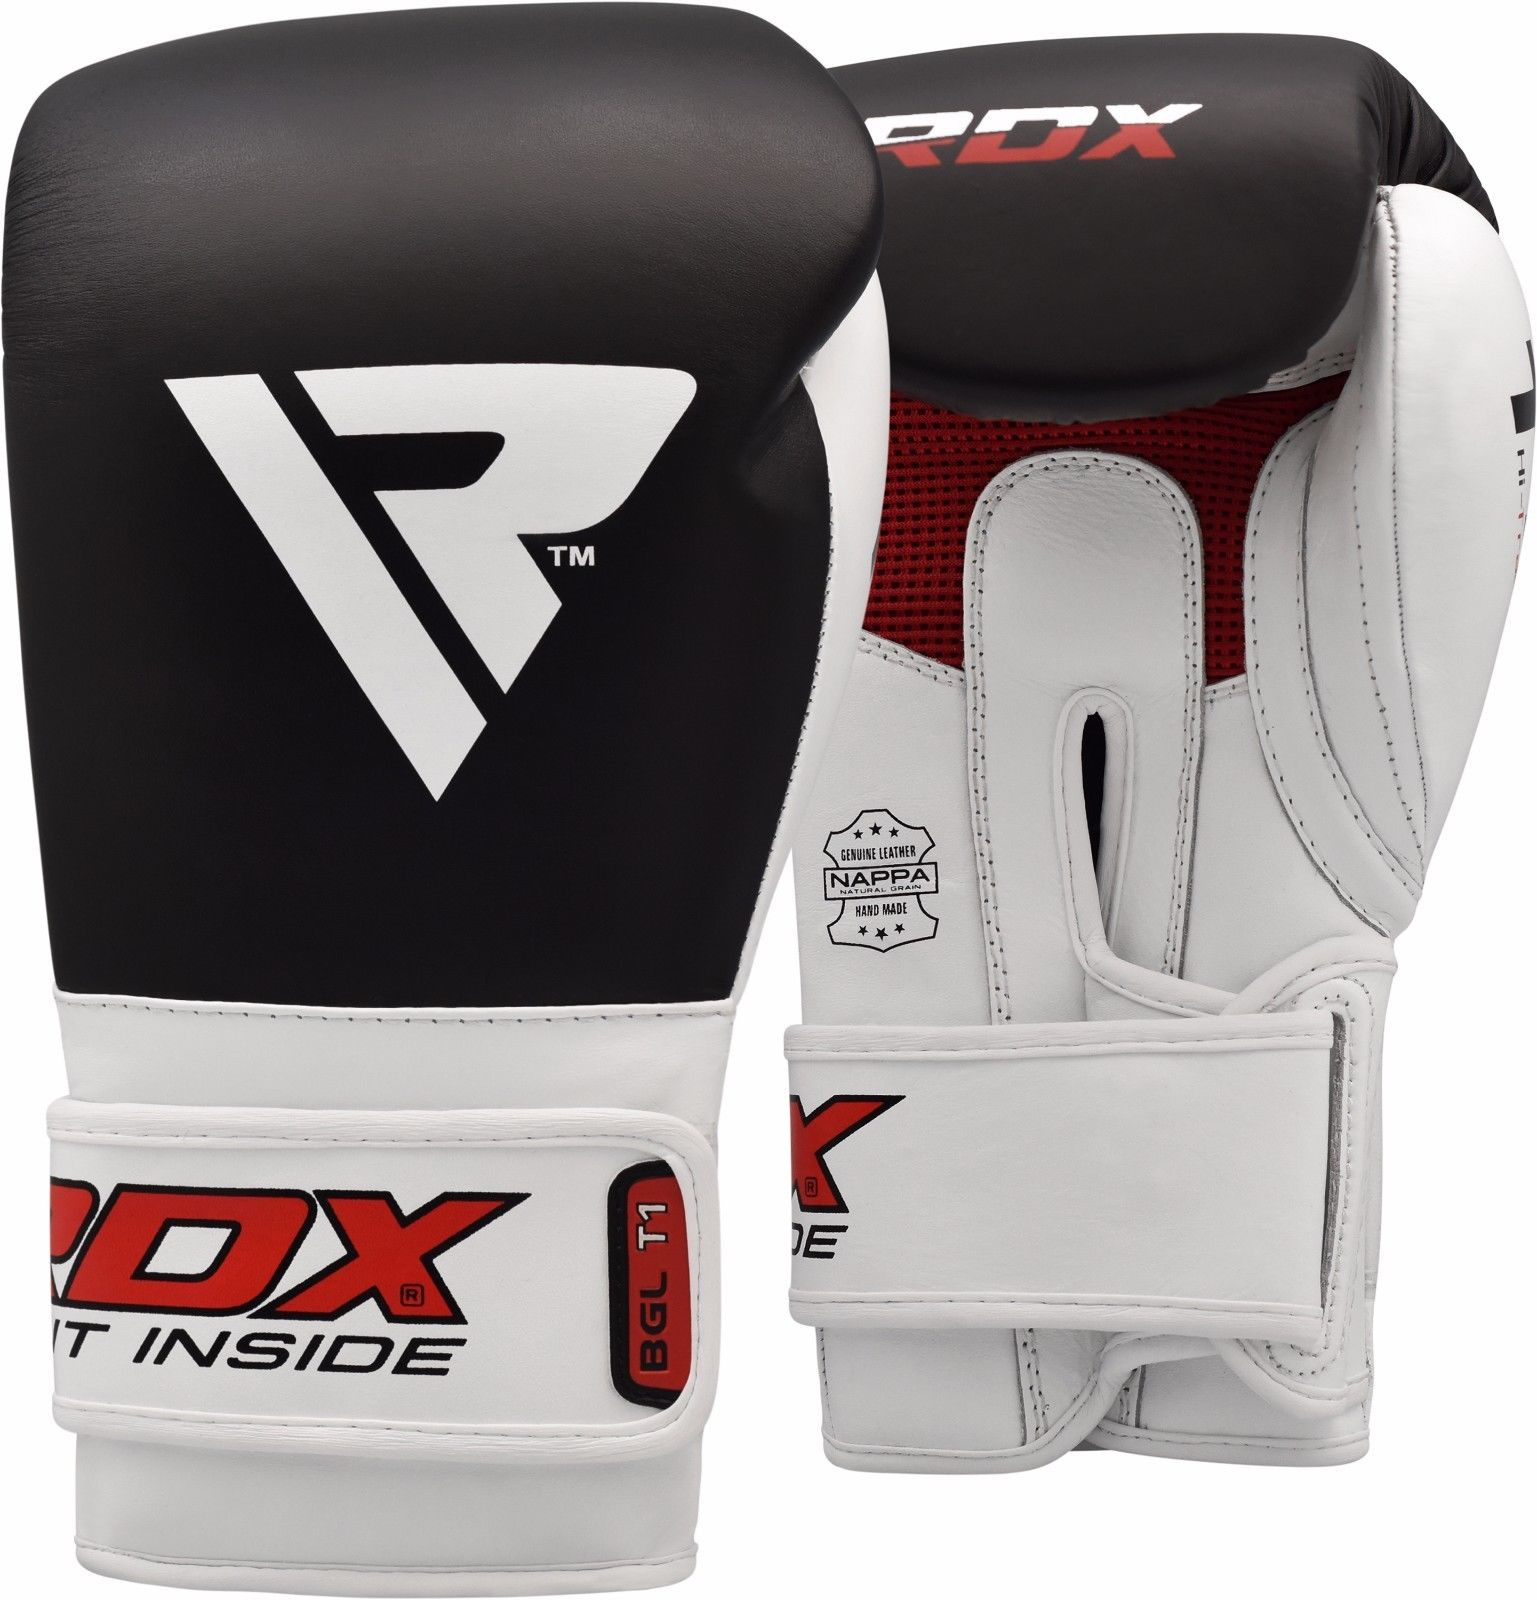 RDX Leather Boxing Gloves T1 Elite Training Bag Glove